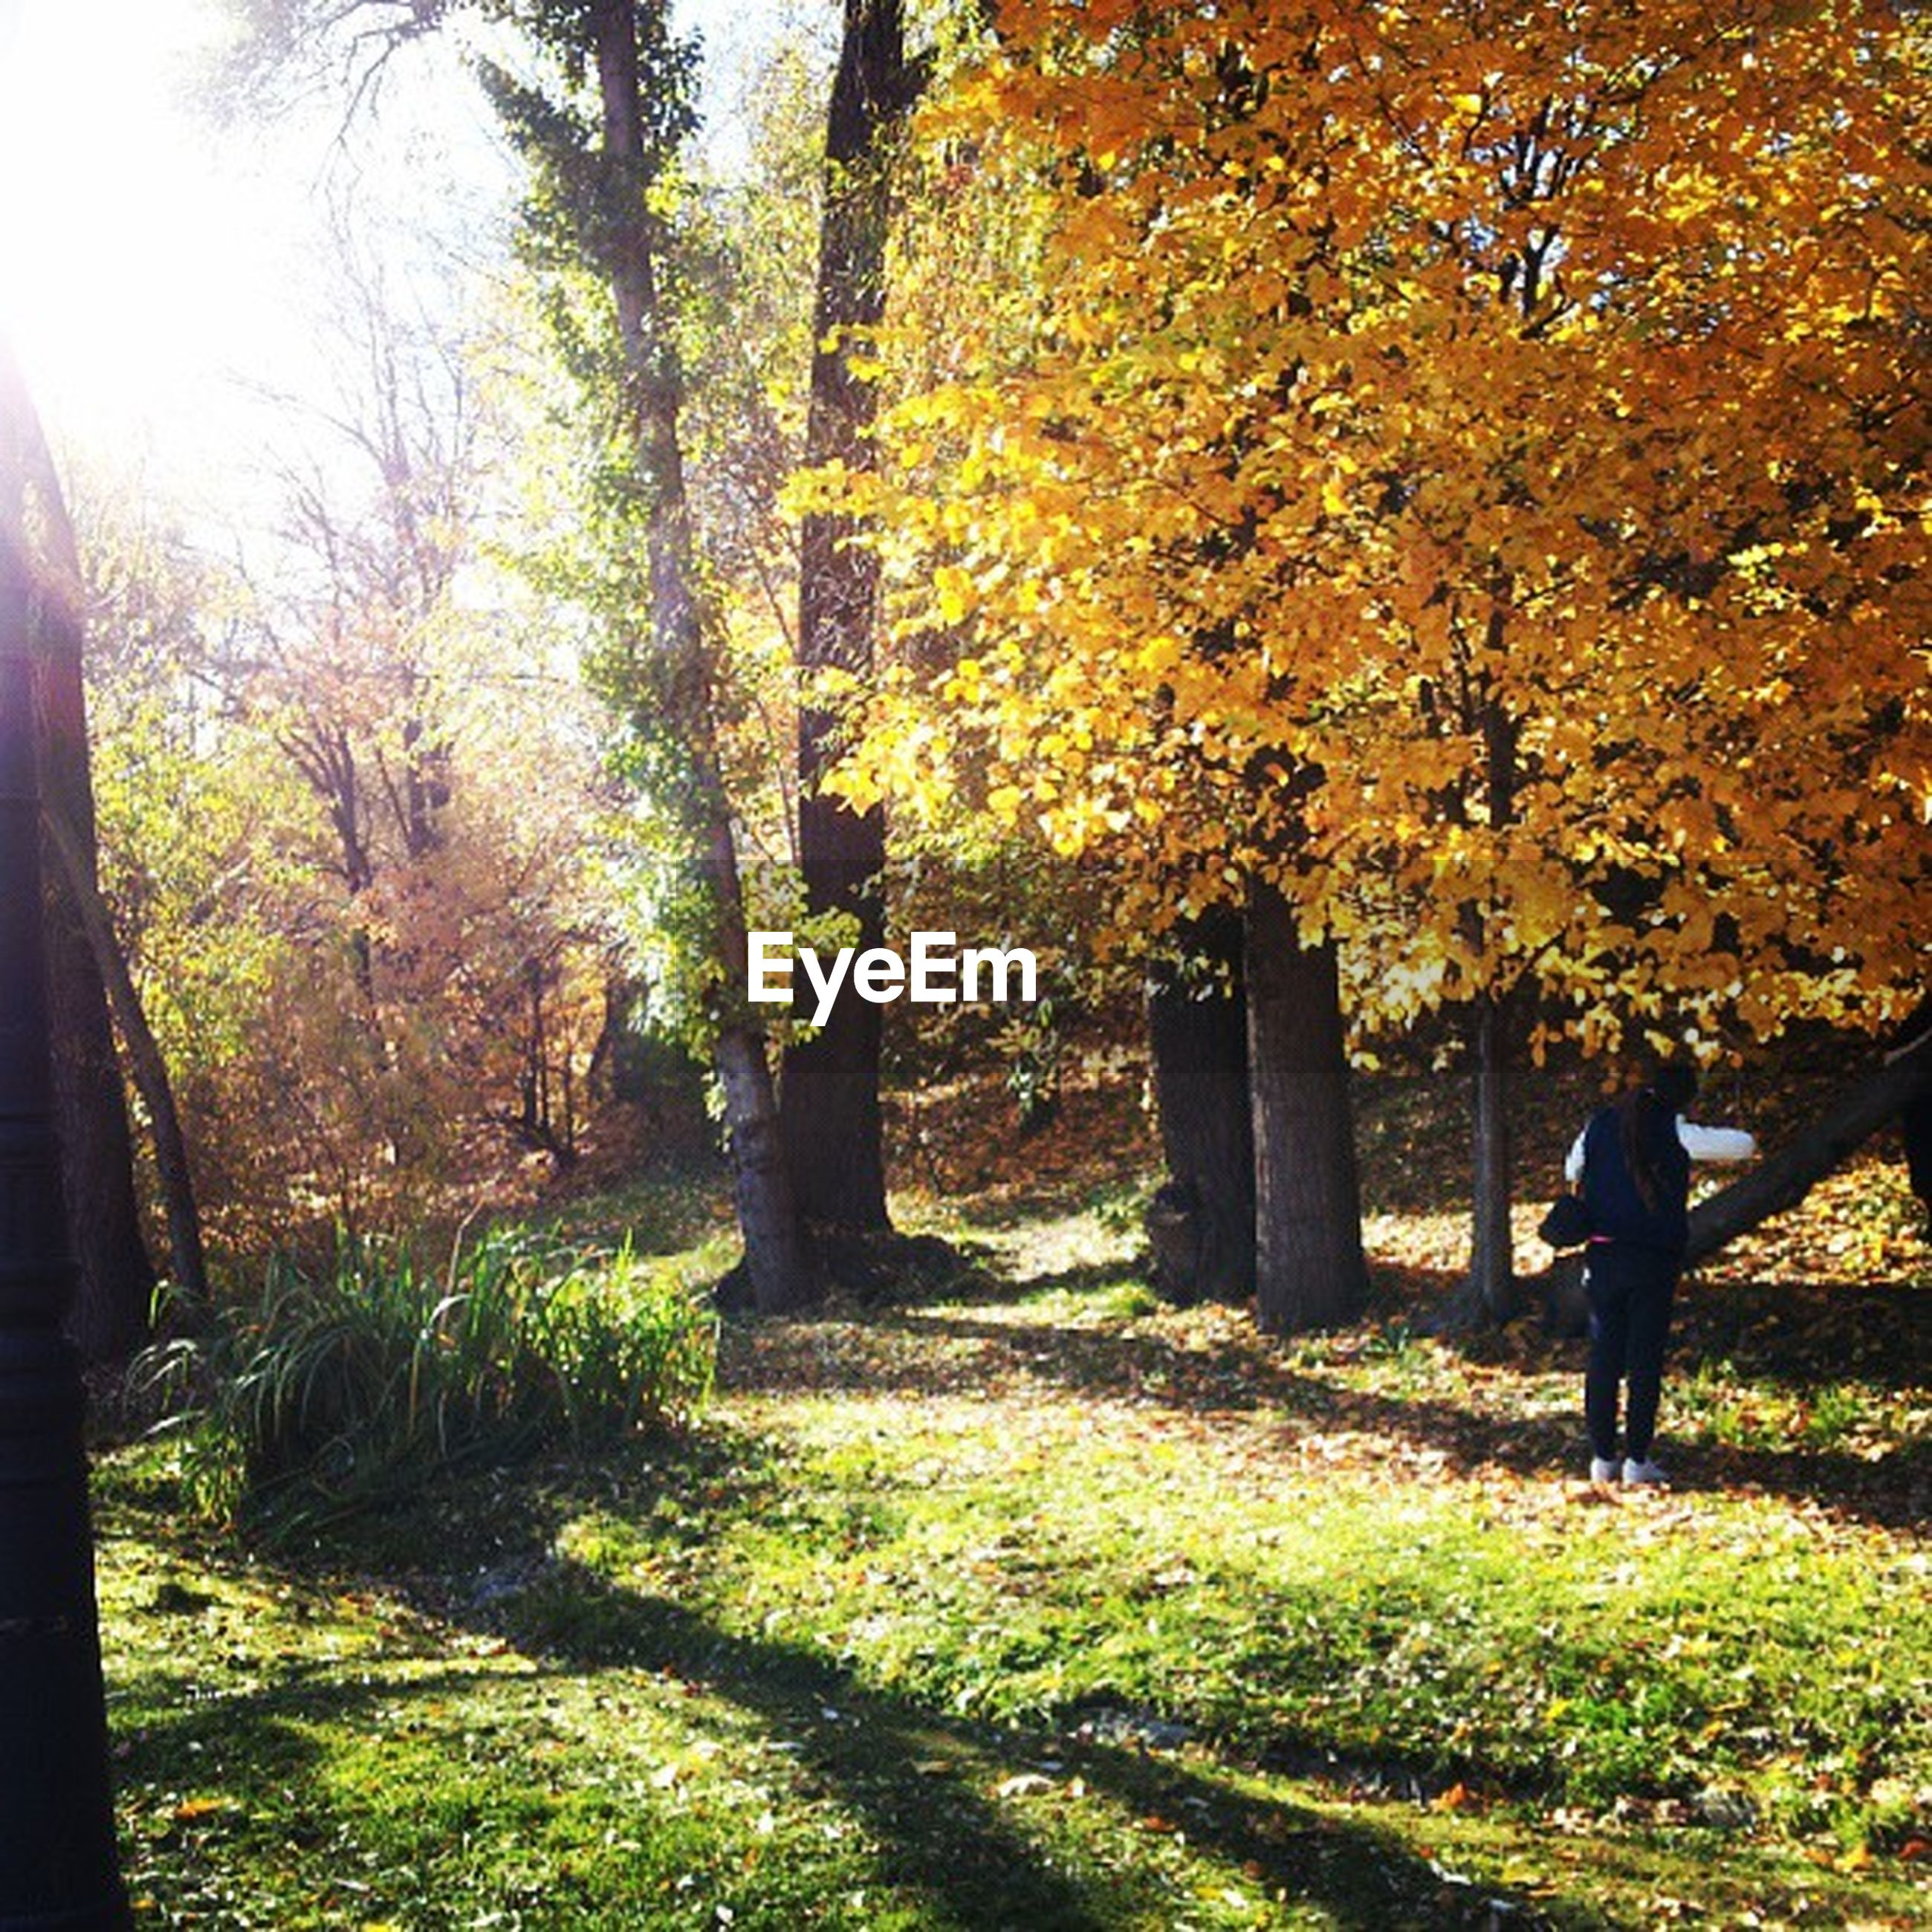 tree, autumn, lifestyles, rear view, leisure activity, men, growth, nature, season, beauty in nature, tranquility, change, person, walking, full length, branch, tranquil scene, standing